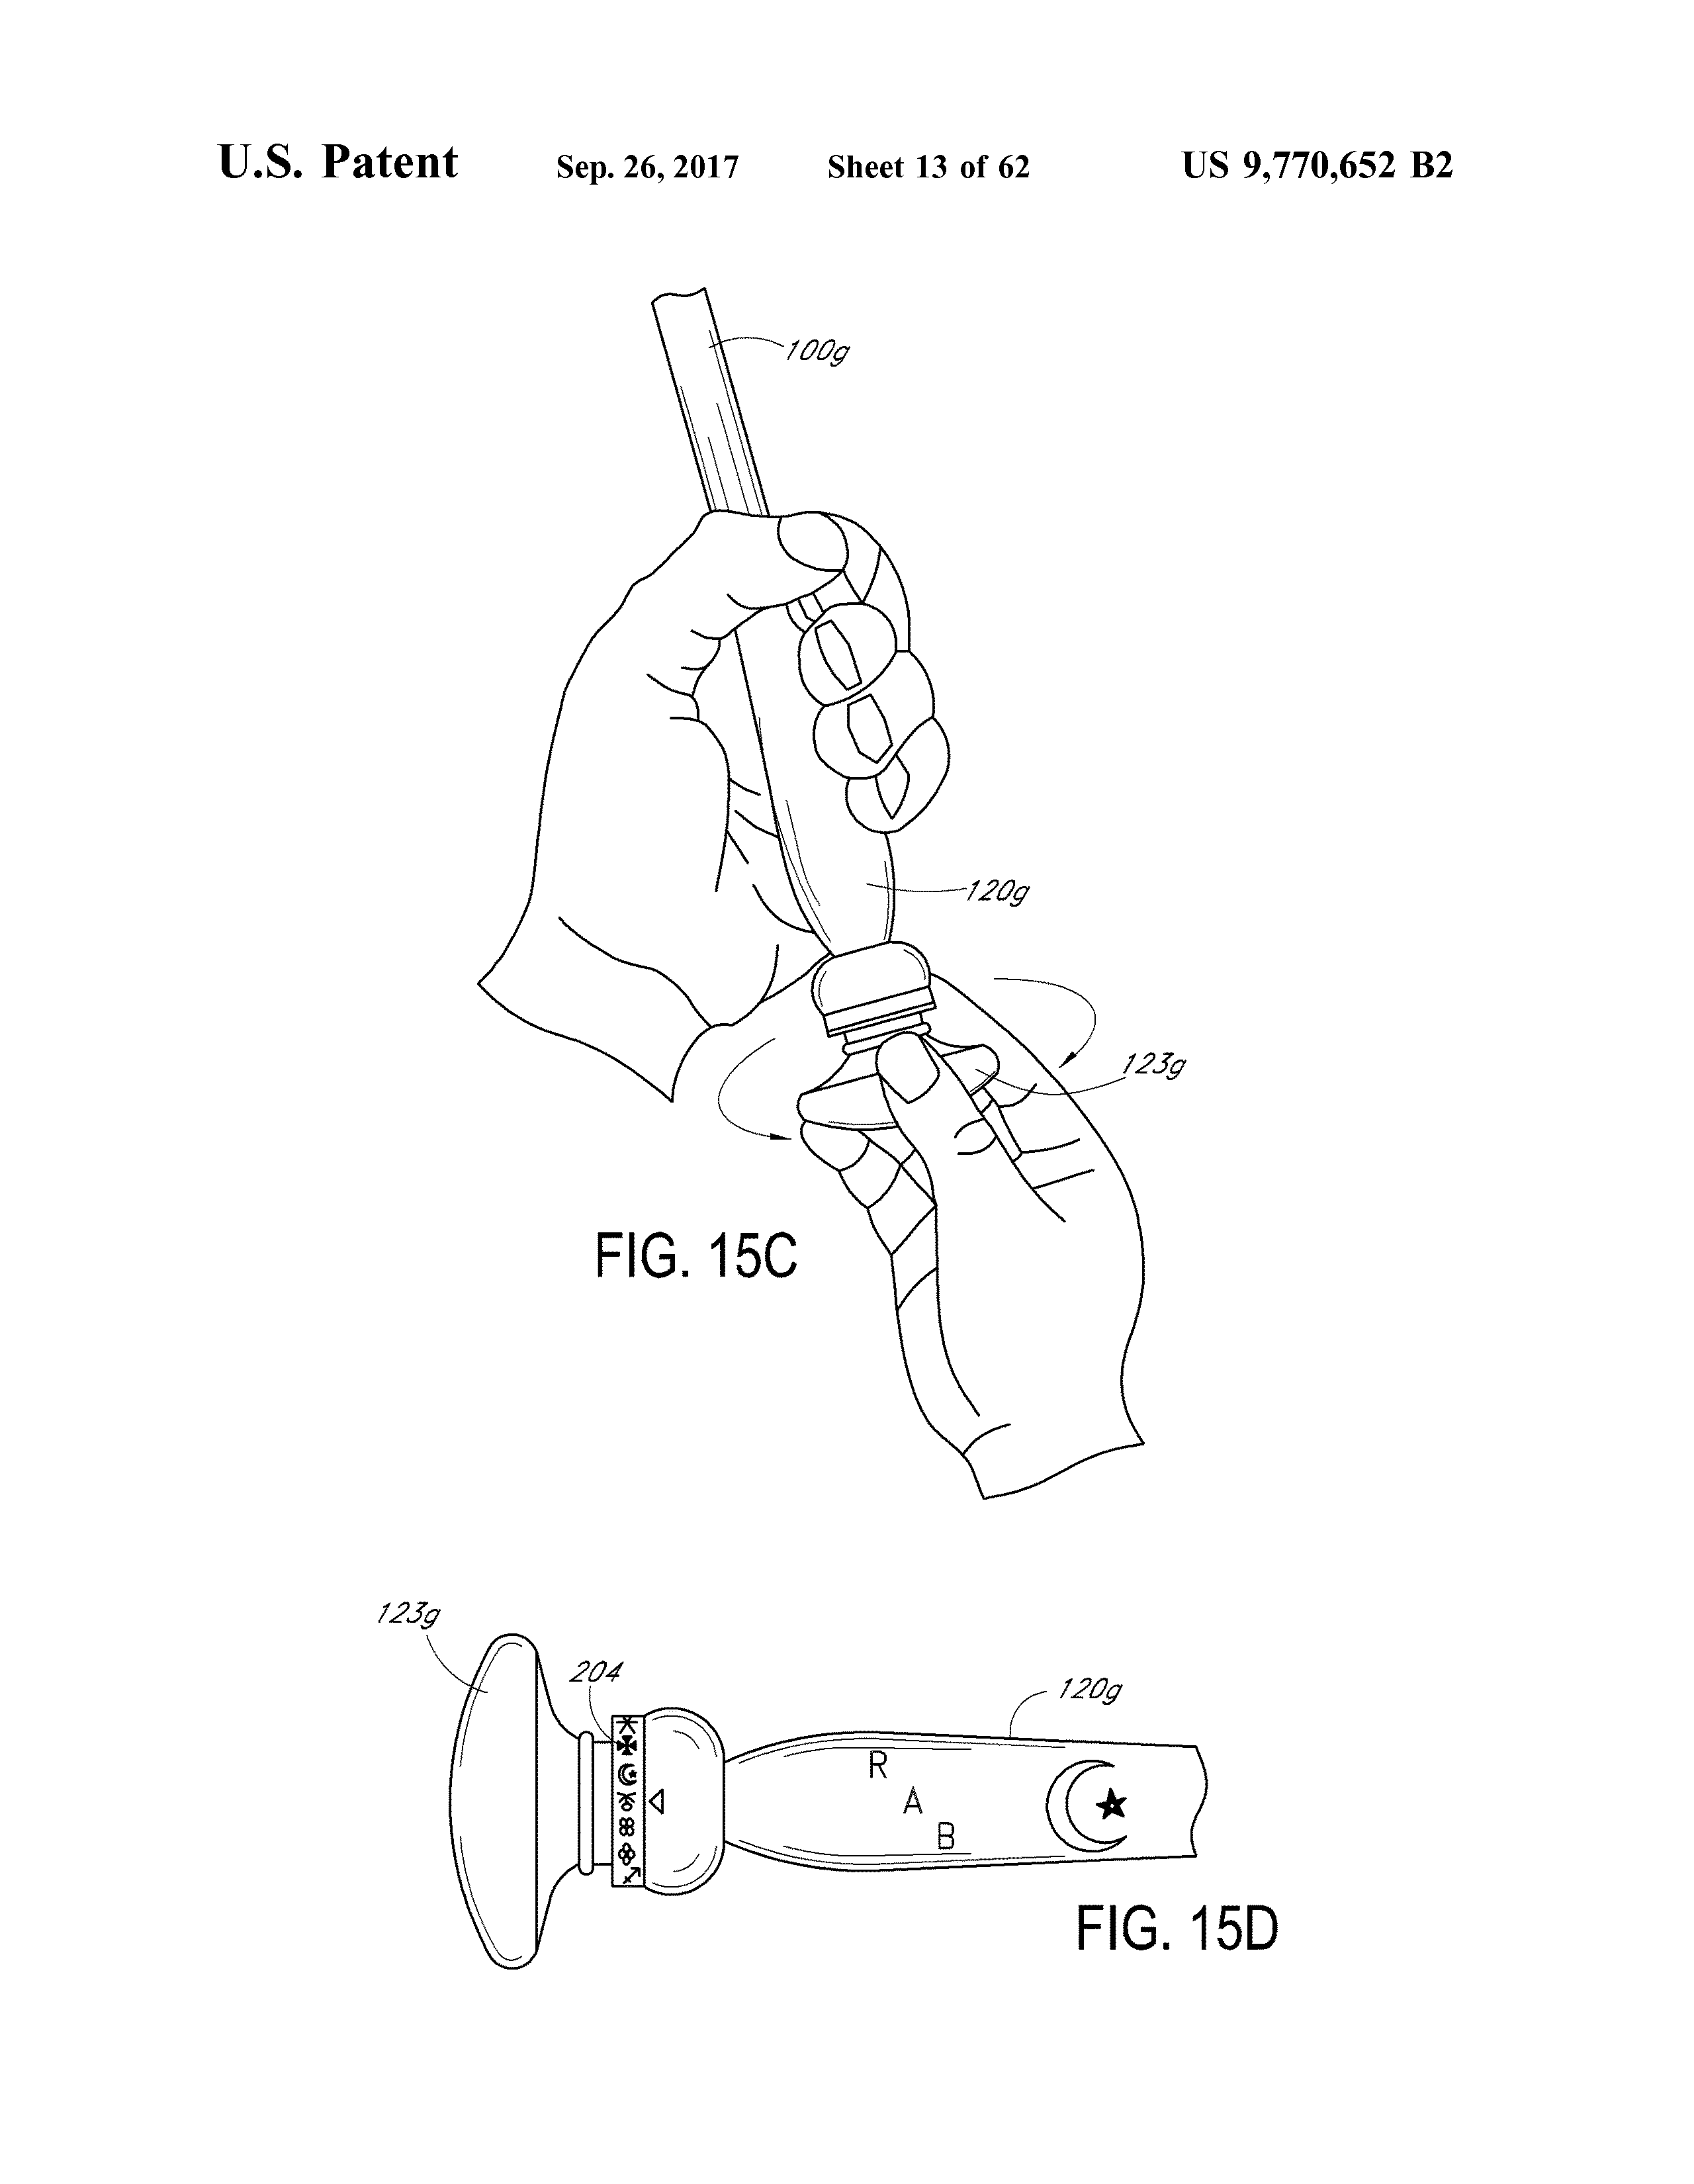 Us 9770652 B2 Wireless Interactive Game Having Both Physical And Virtual Elements The Lens Free Open Patent And Scholarly Search